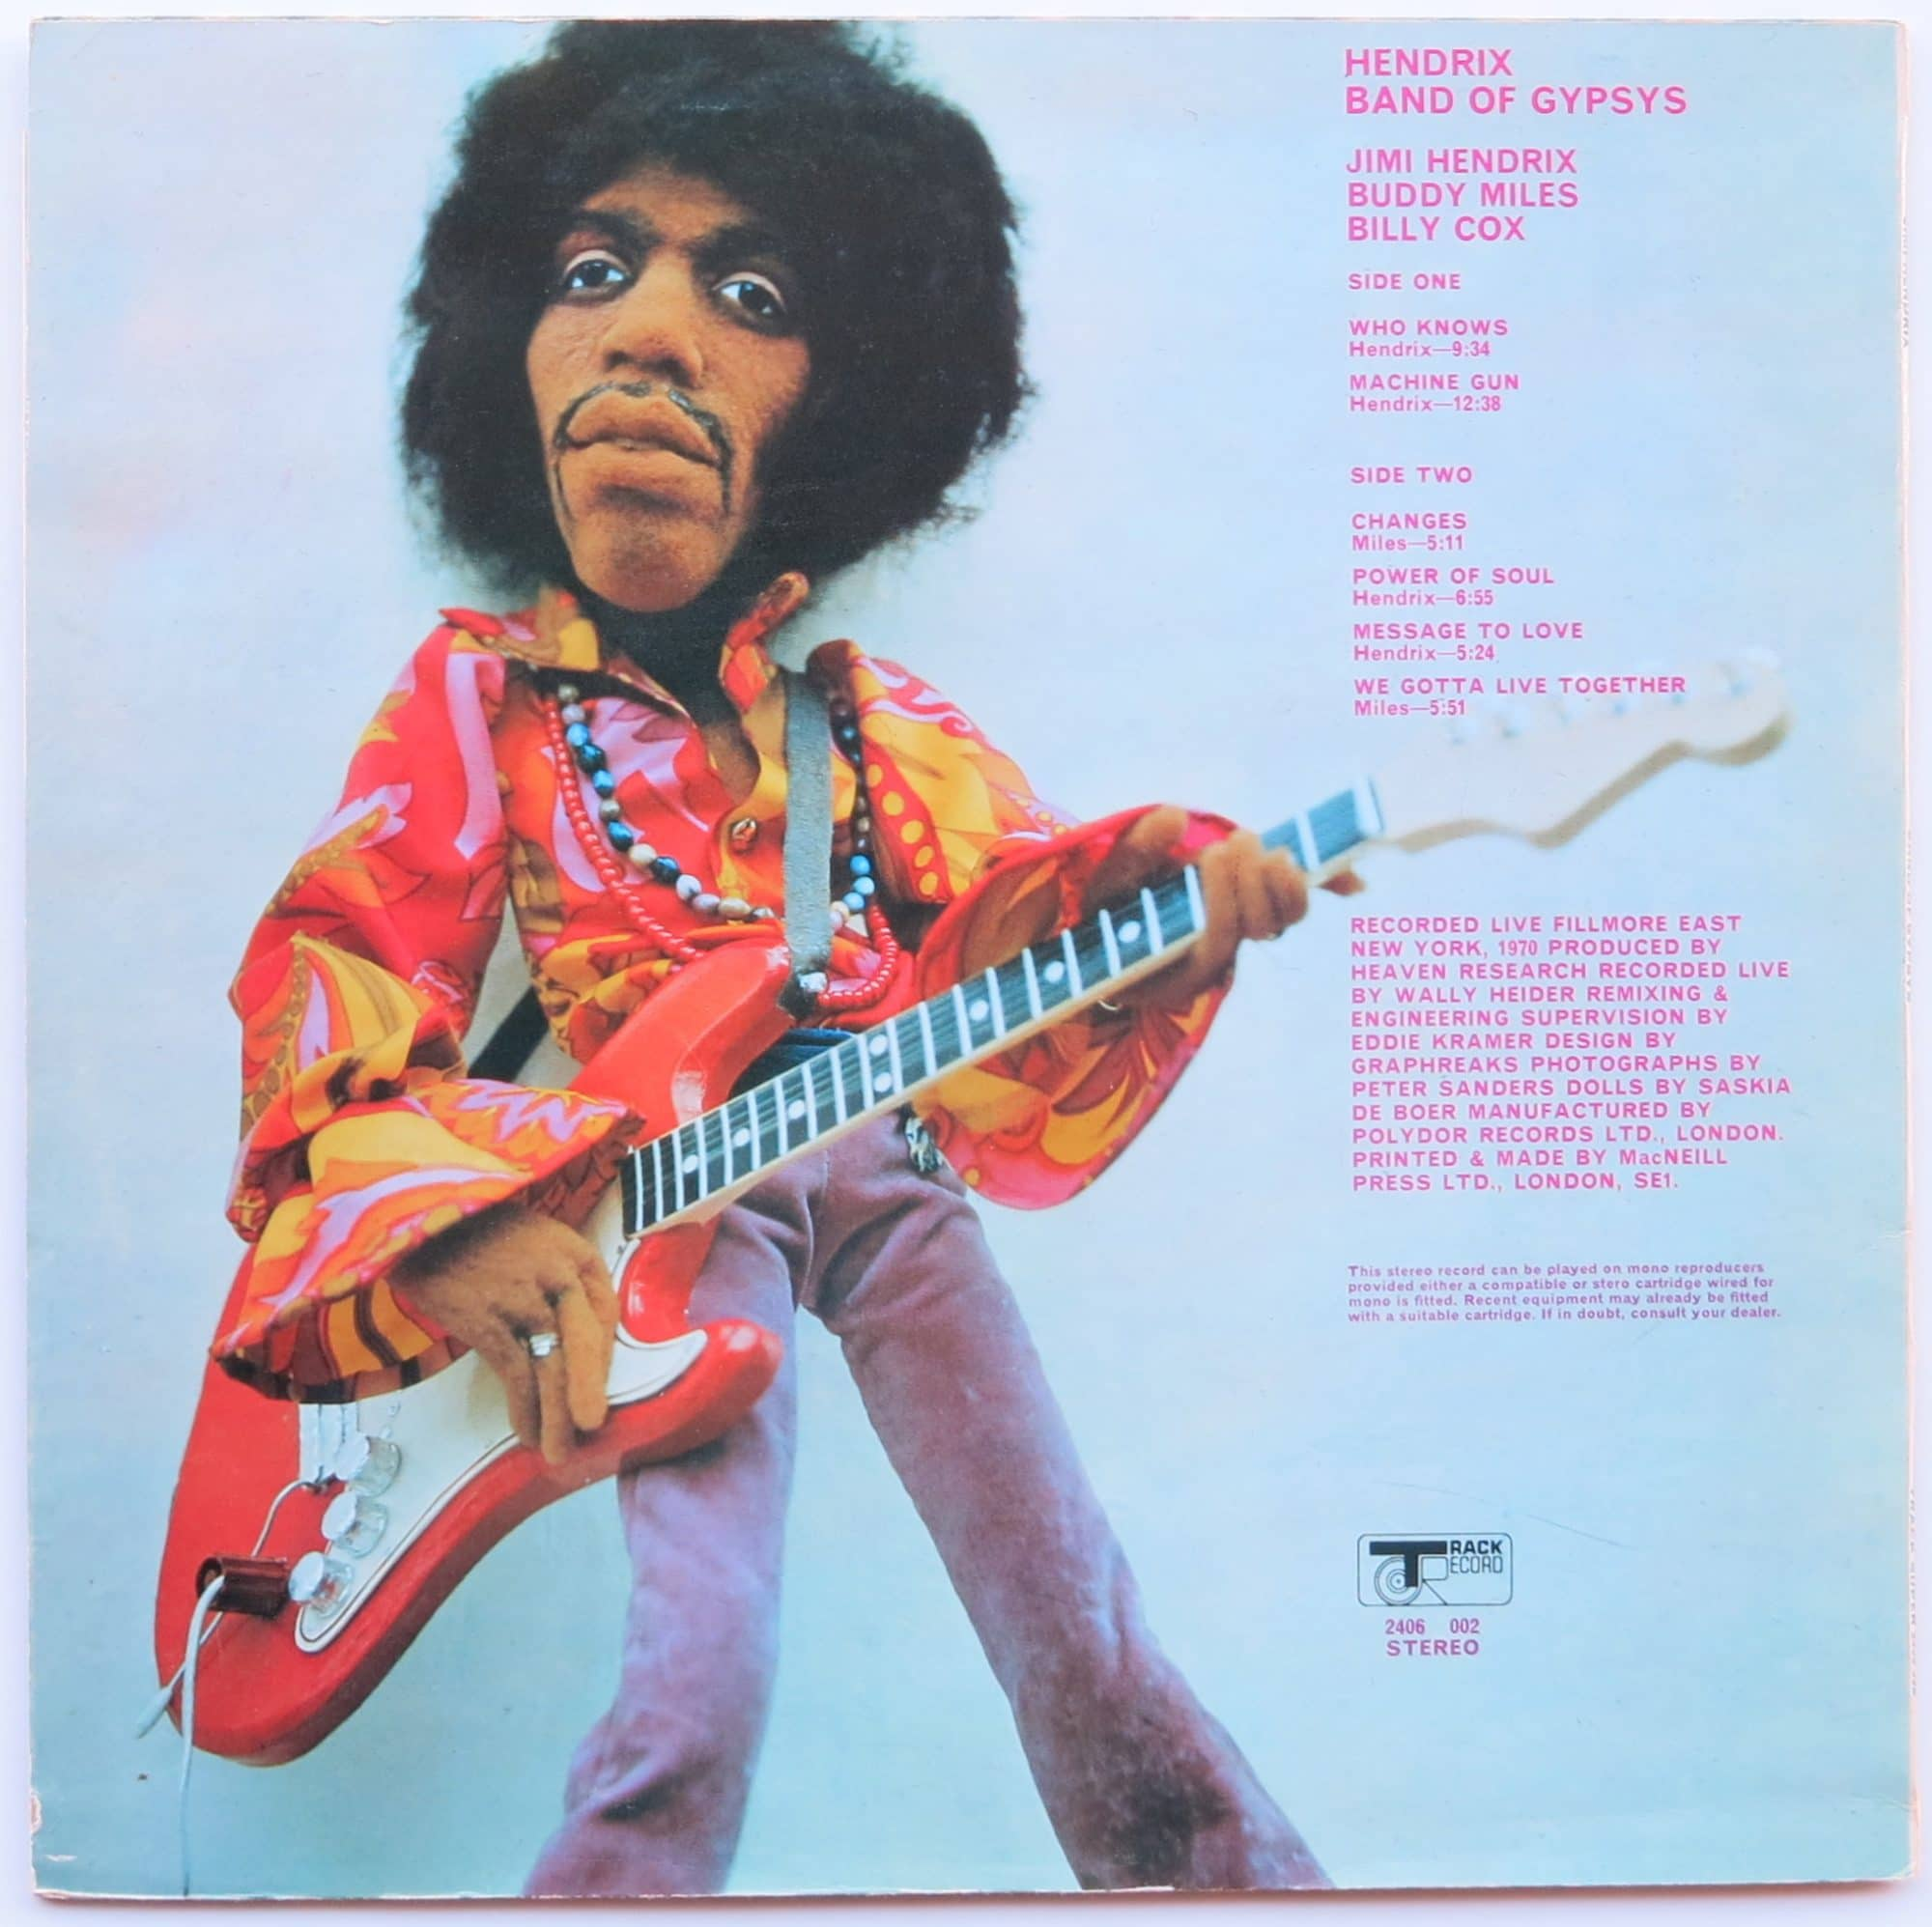 Jimi Hendrix Mint Uk Track Band Of Gypsys With Puppet